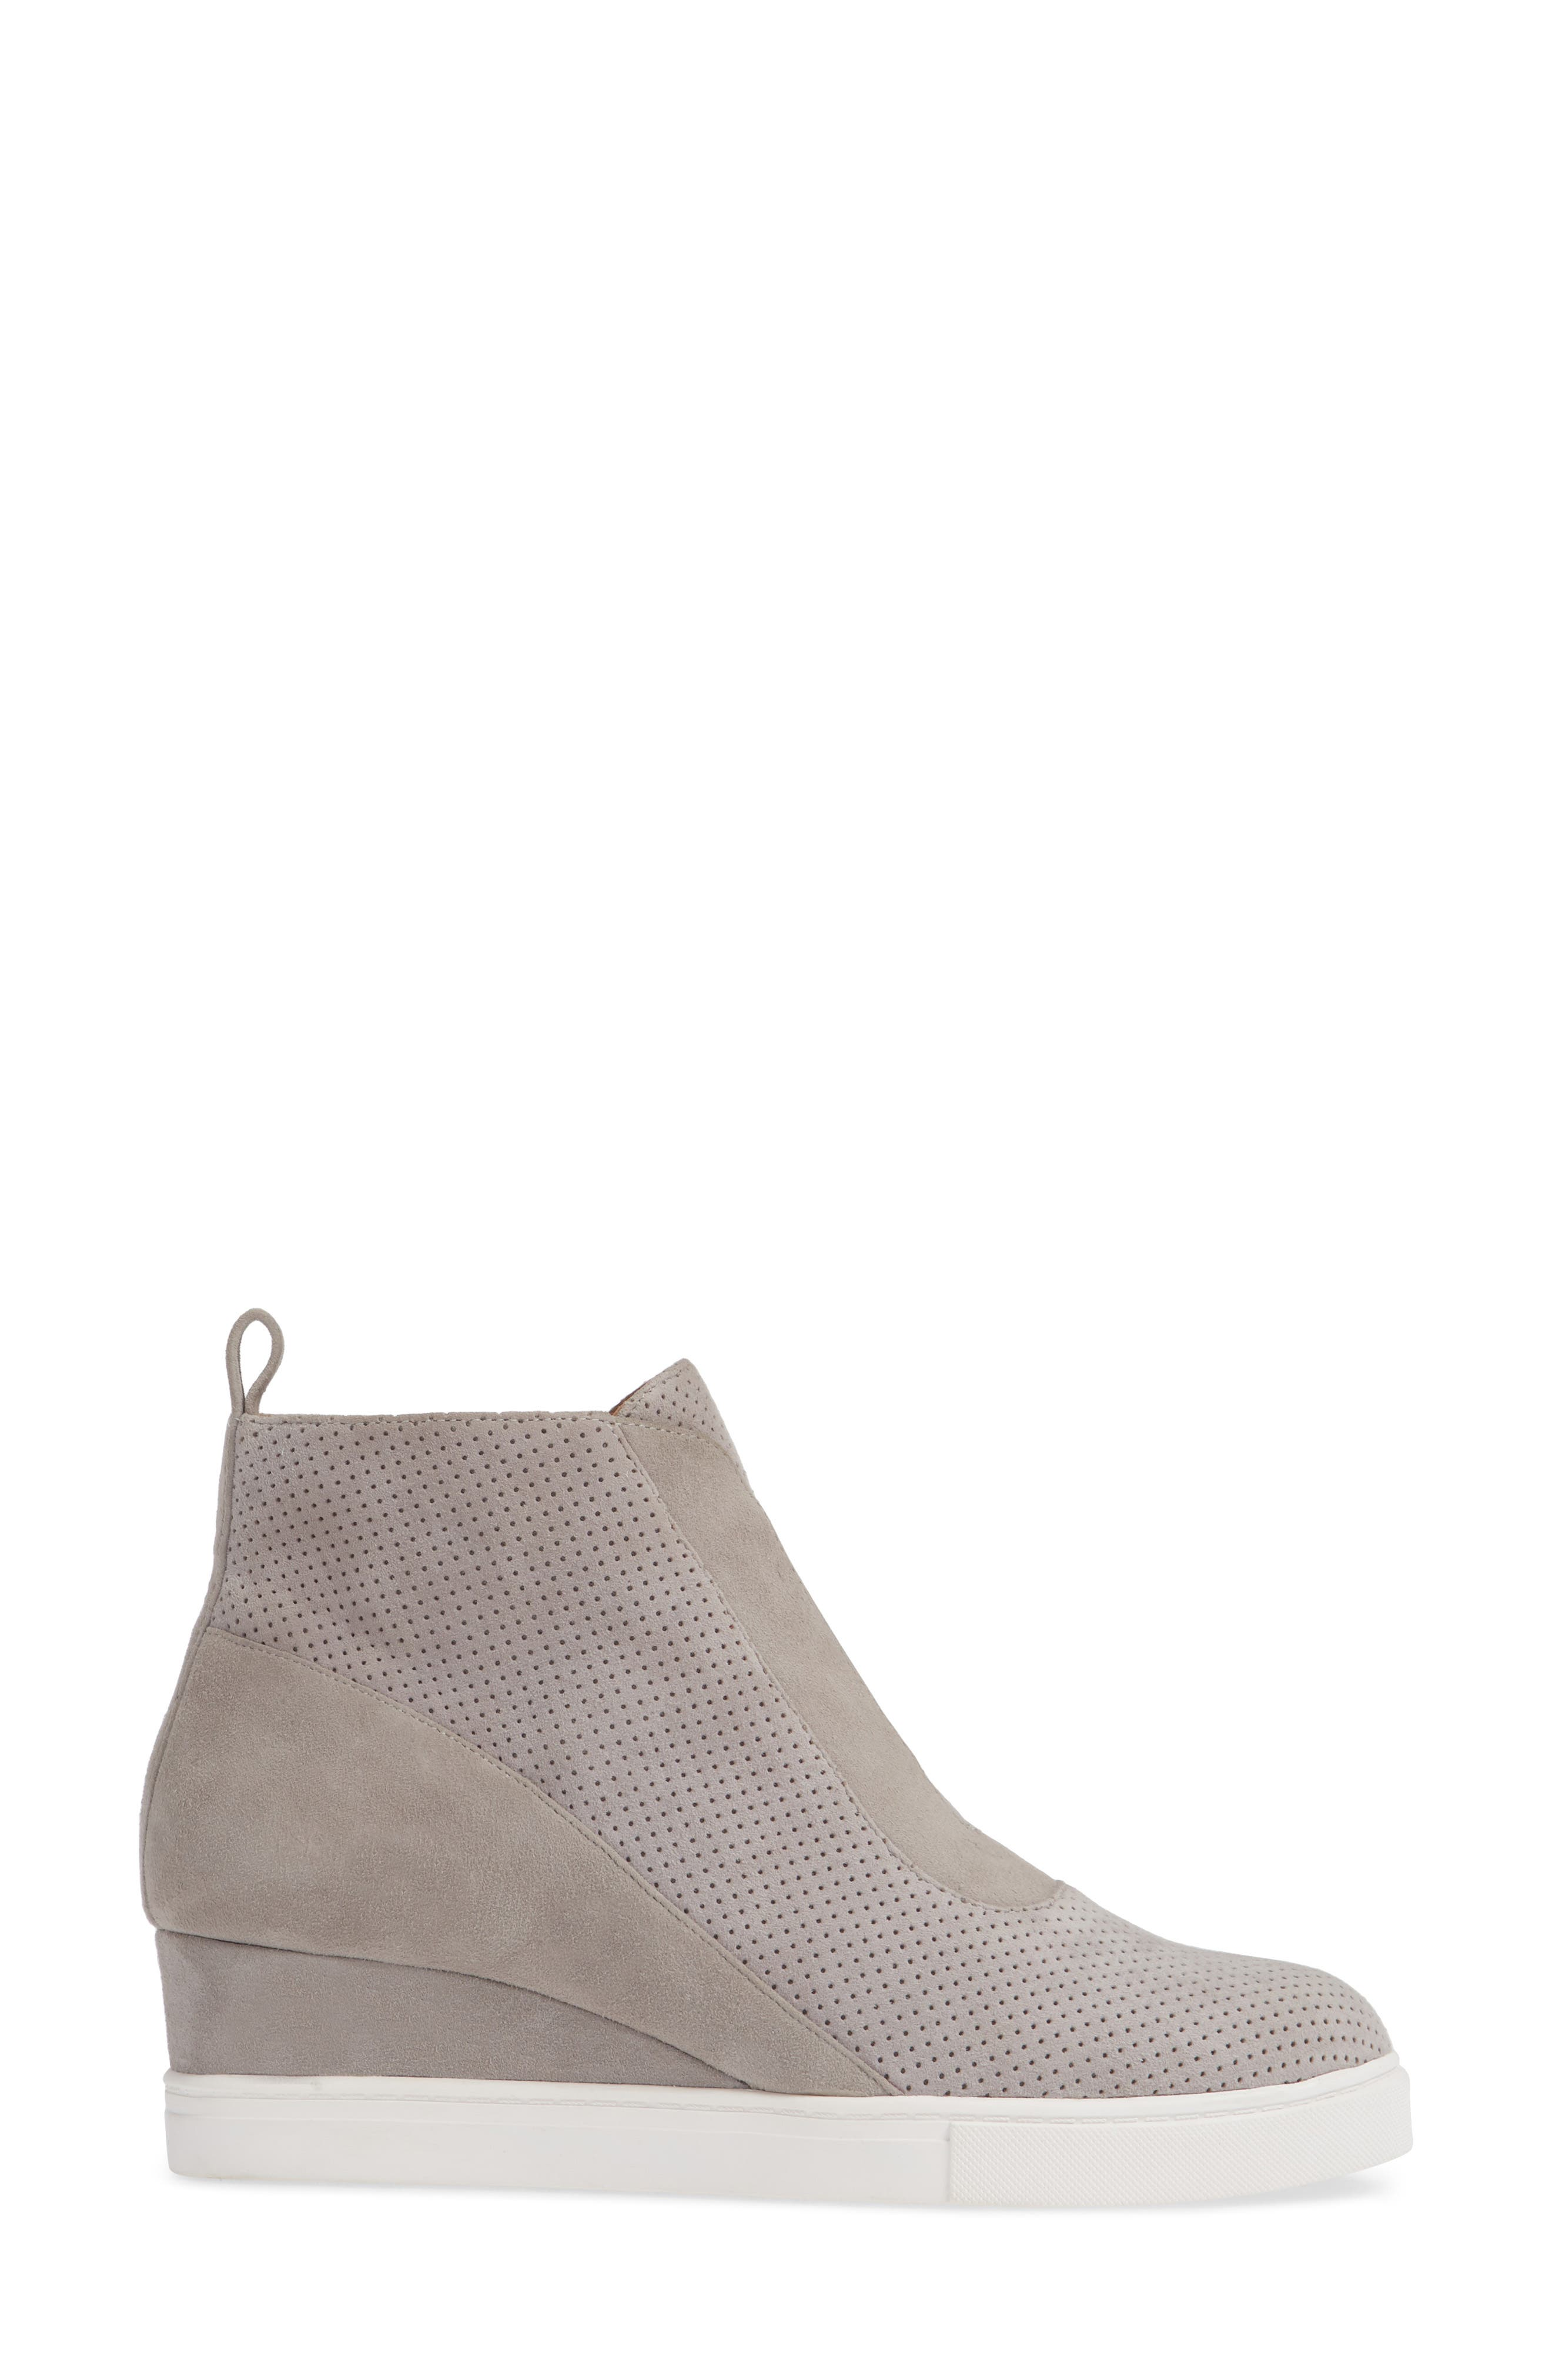 LINEA PAOLO, Anna Wedge Sneaker, Alternate thumbnail 3, color, ROCK PER SUEDE